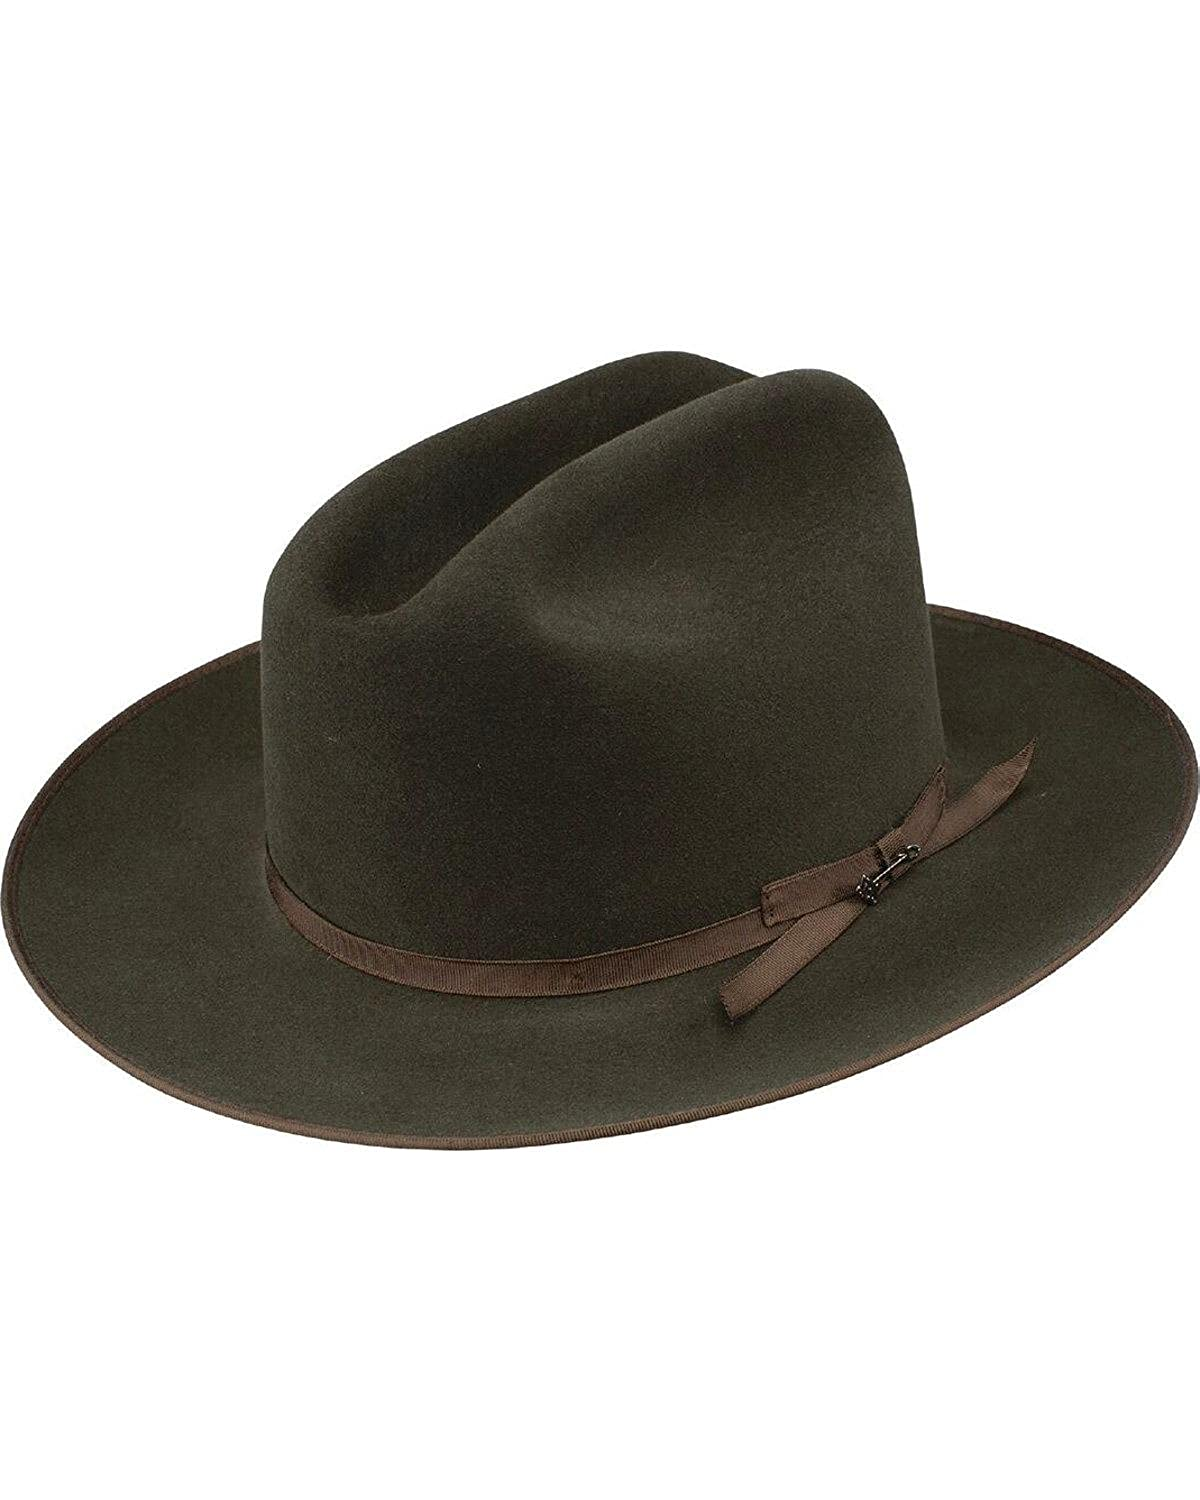 13cae5db80f ... Stetson Mens Royal Deluxe Open Road Hat - Tfropr-362675 2000168149 ...